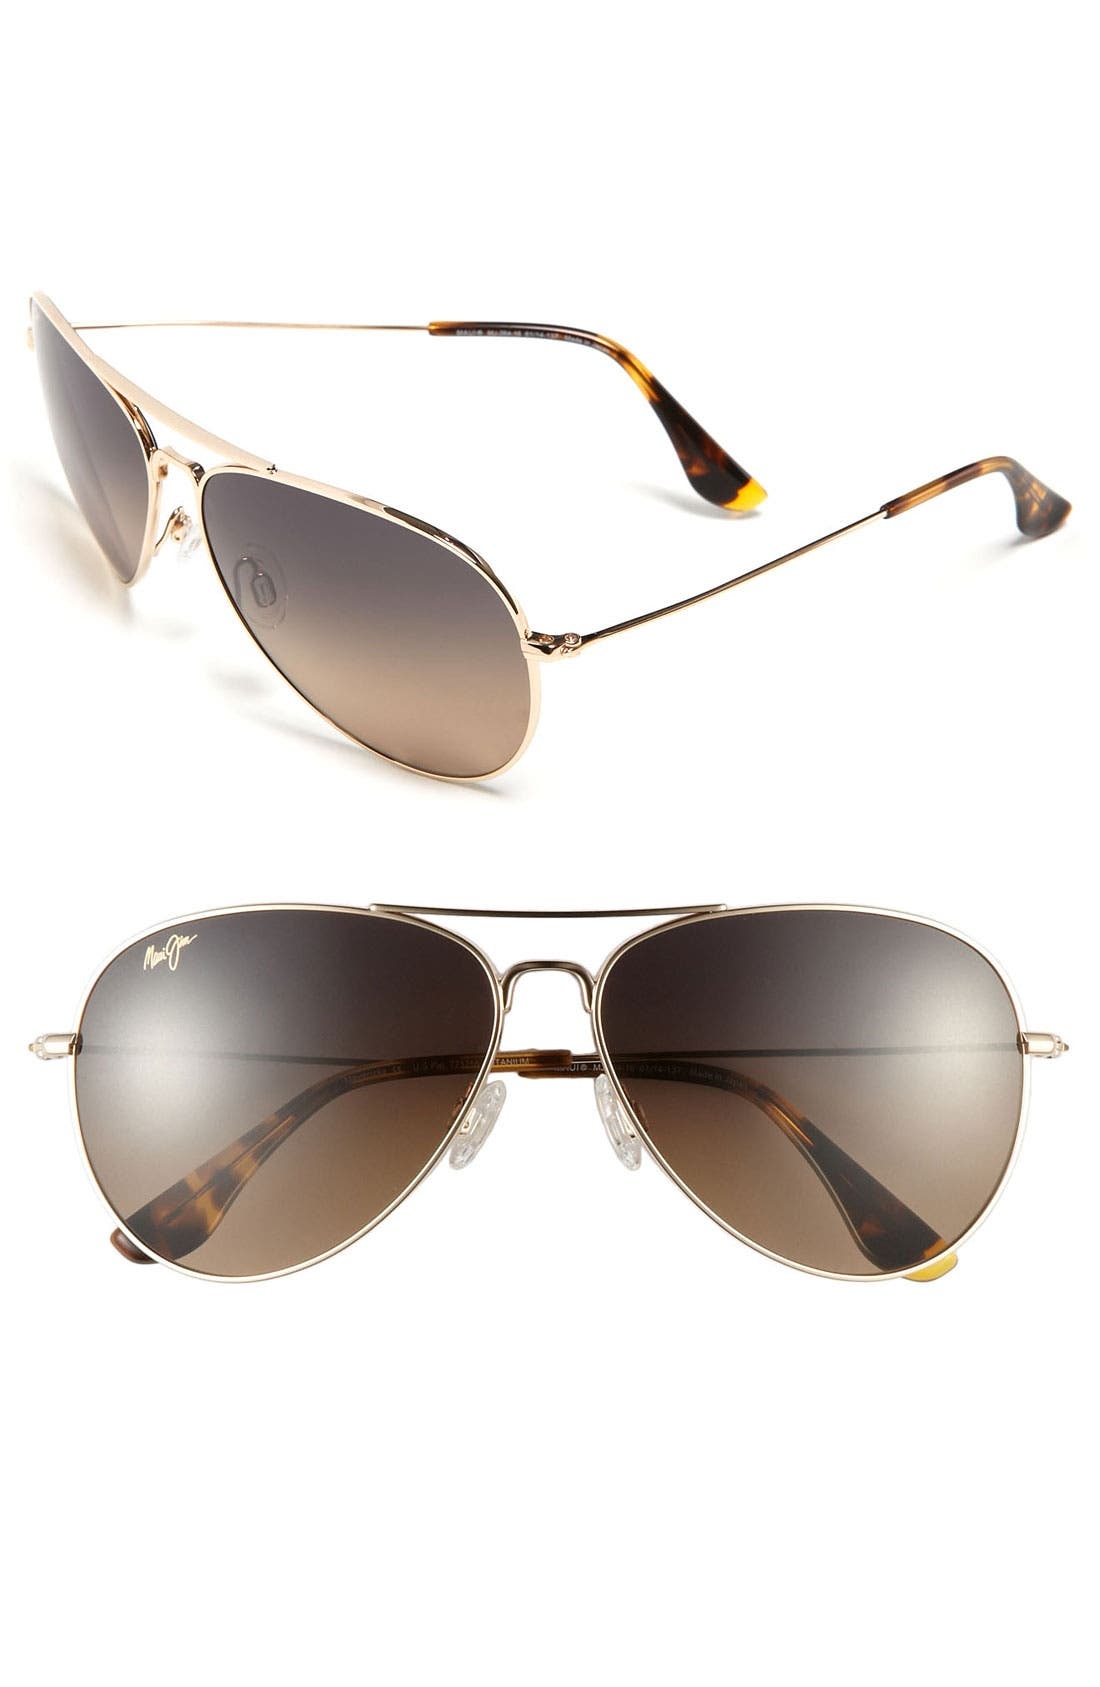 Main Image - Maui Jim Mavericks 61mm PolarizedPlus2® Aviator Sunglasses